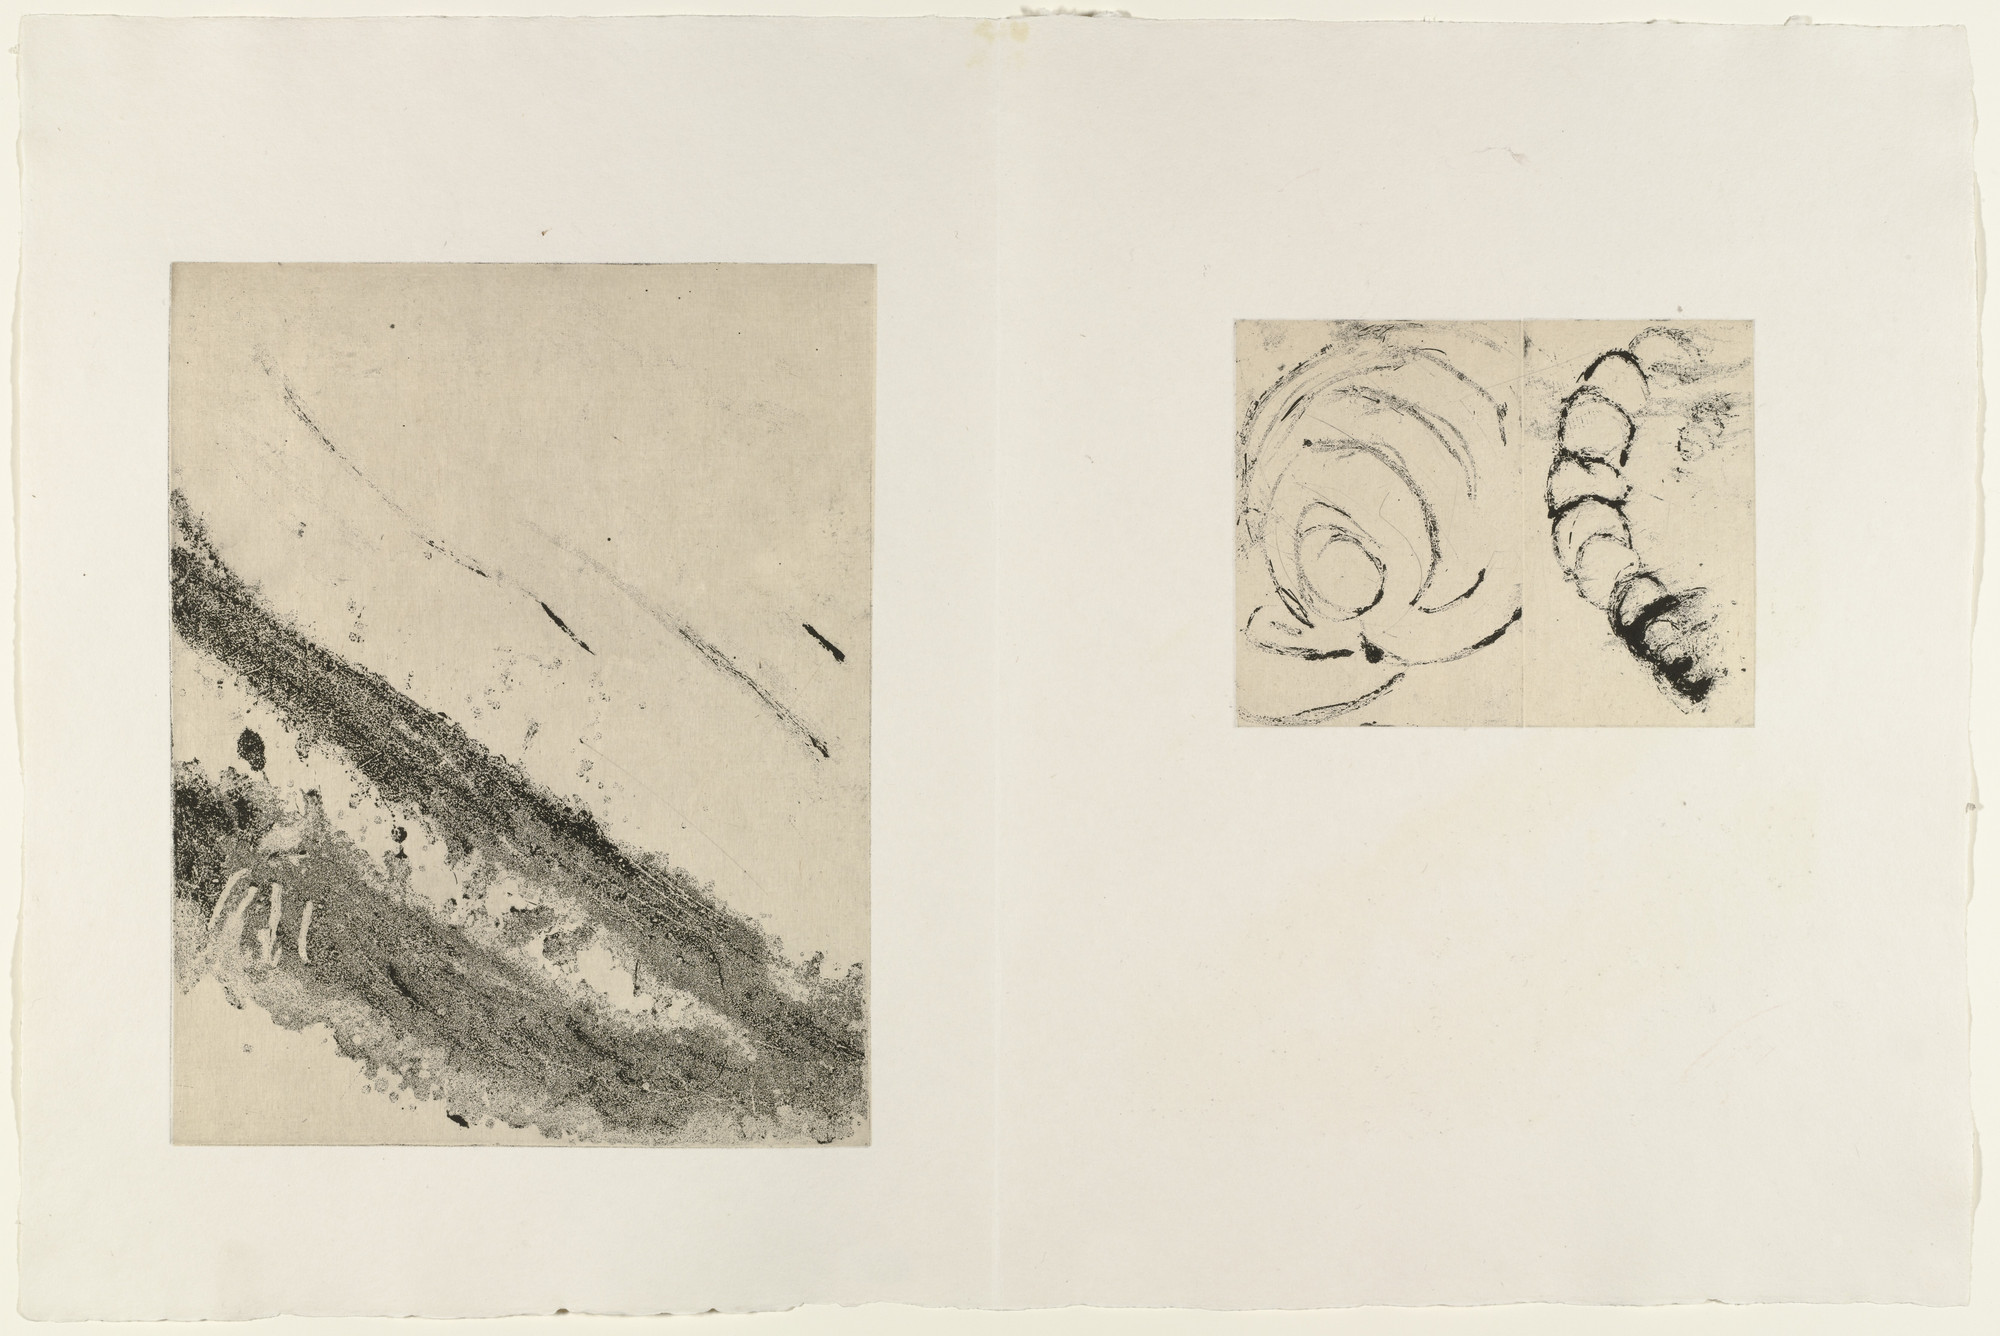 Louise Bourgeois. Untitled. 1989-1990